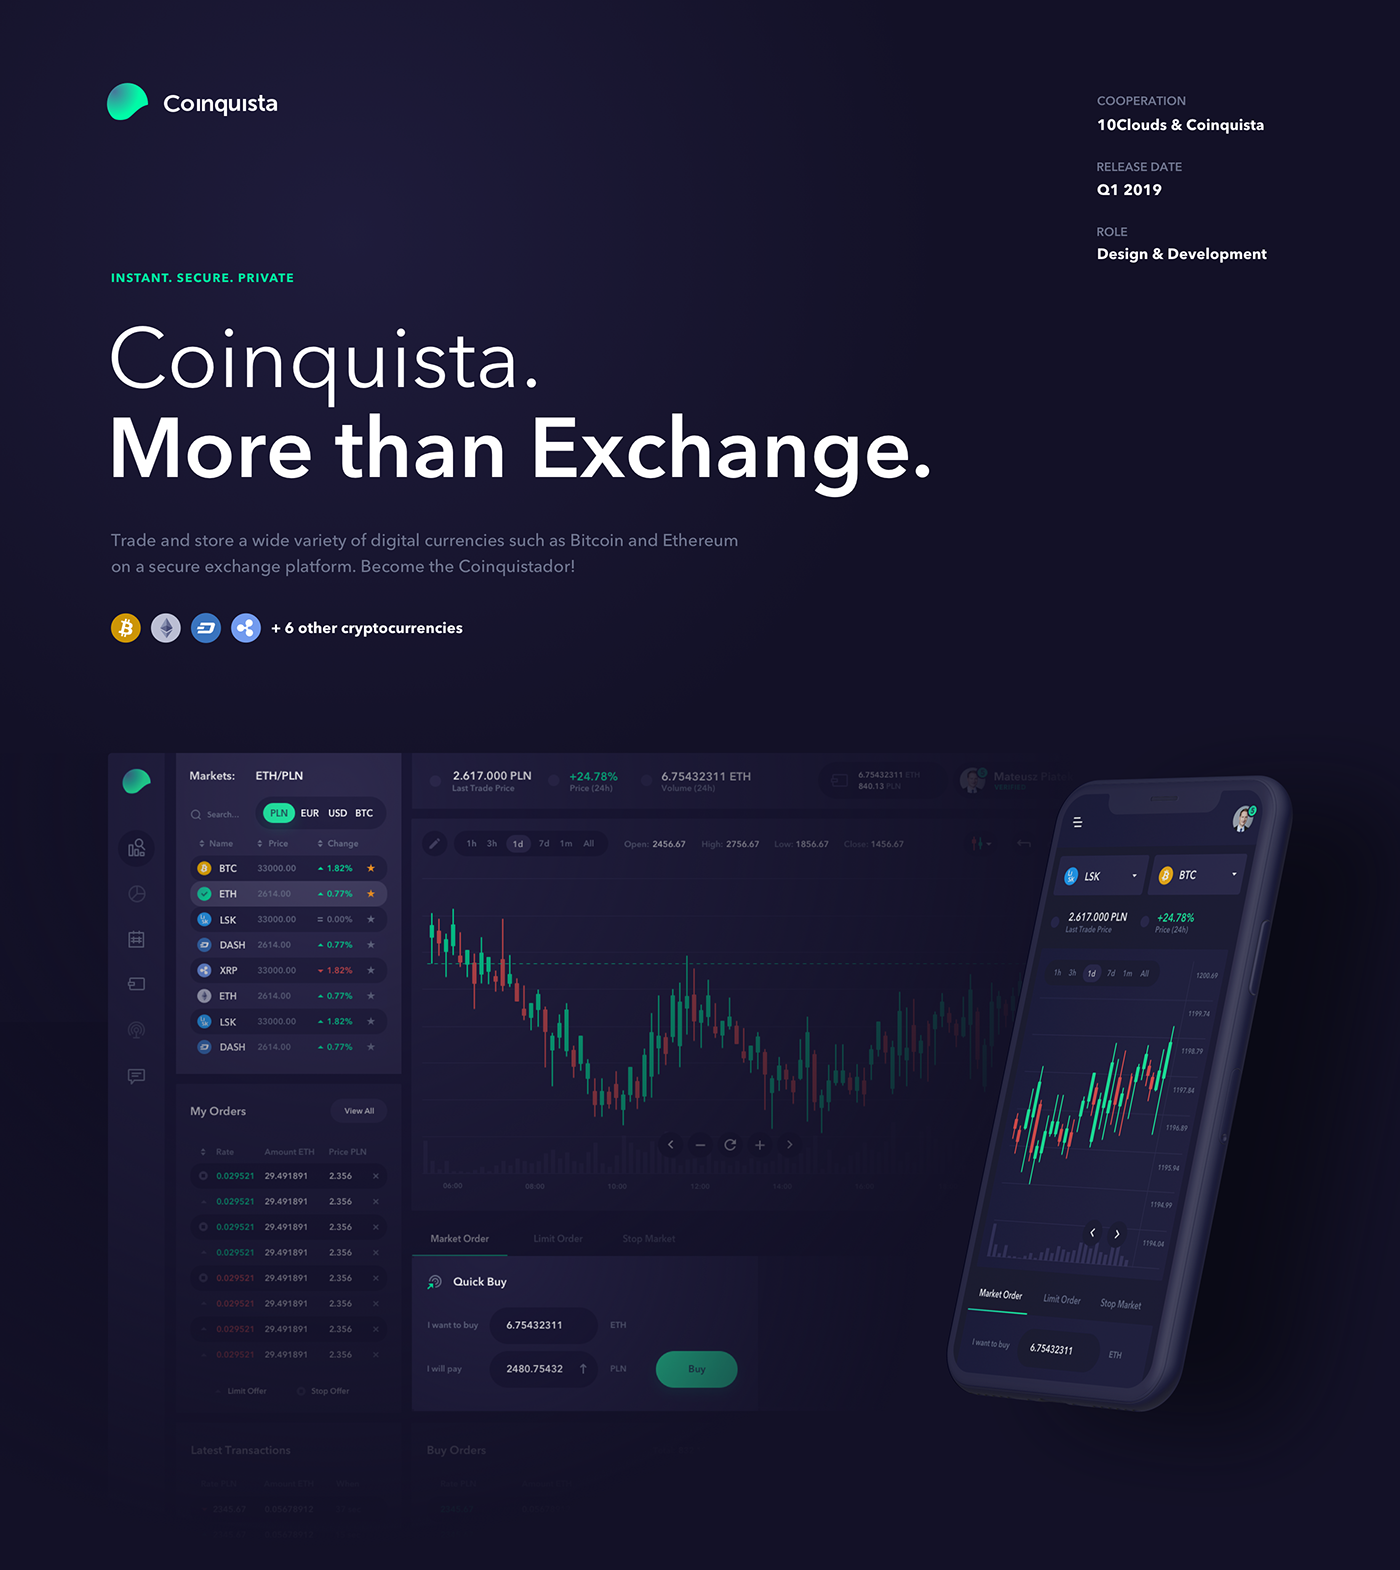 exchange cryptocurrencies crypto UI ux product design 10Clouds coinquista motion design